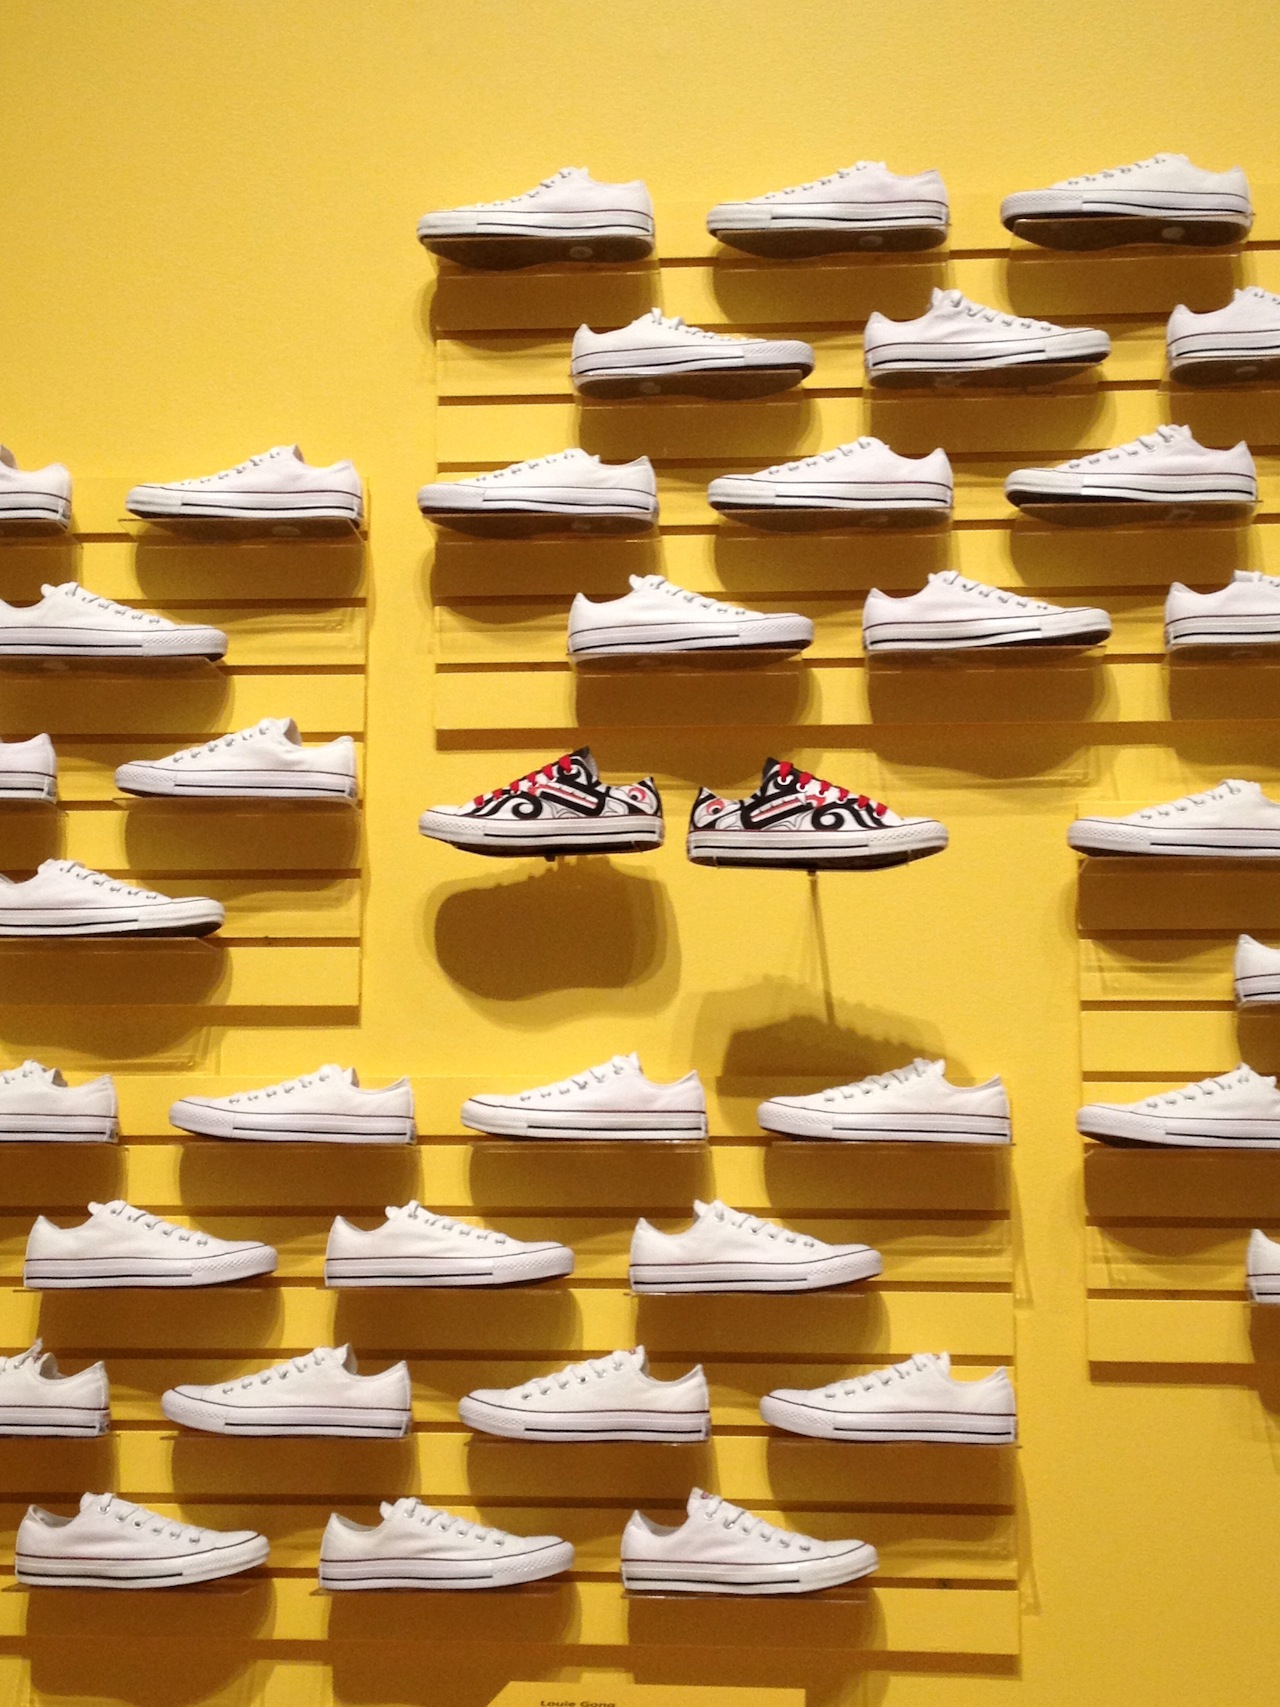 Wolf Chucks by Louie Wong in a striking commercial style display